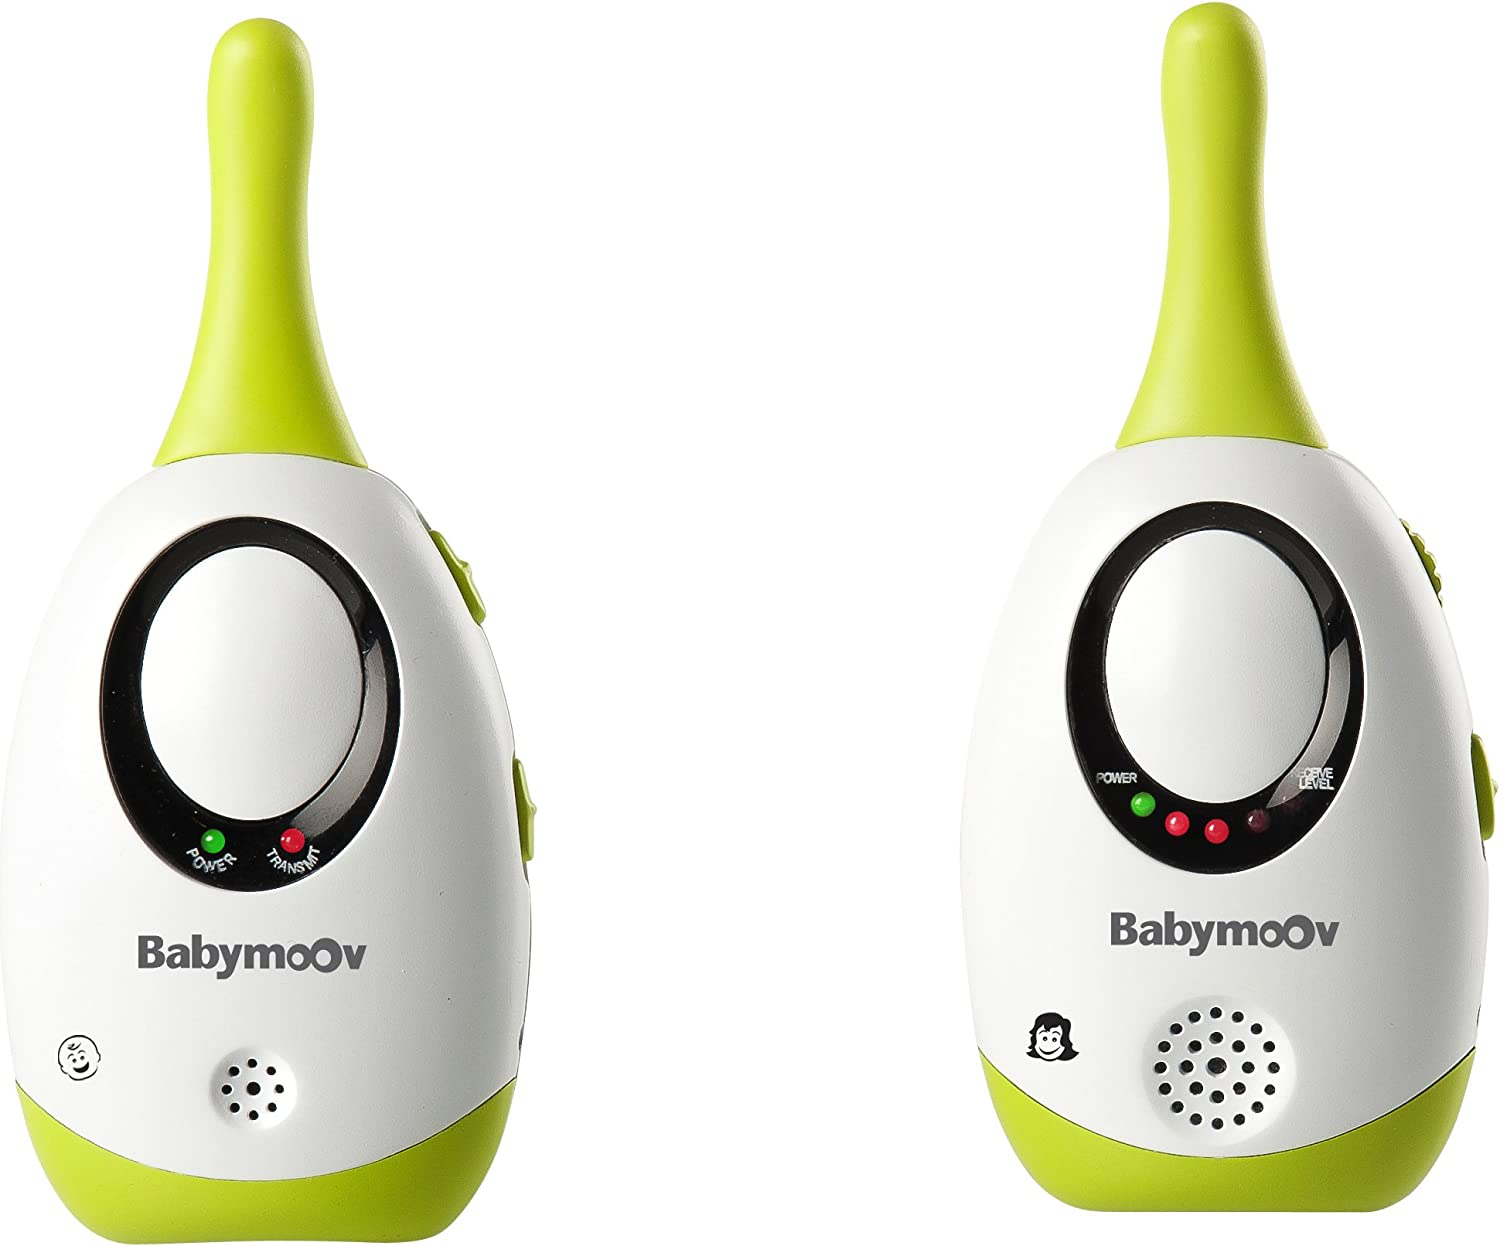 Babymoov Simply Care Baby Monitor